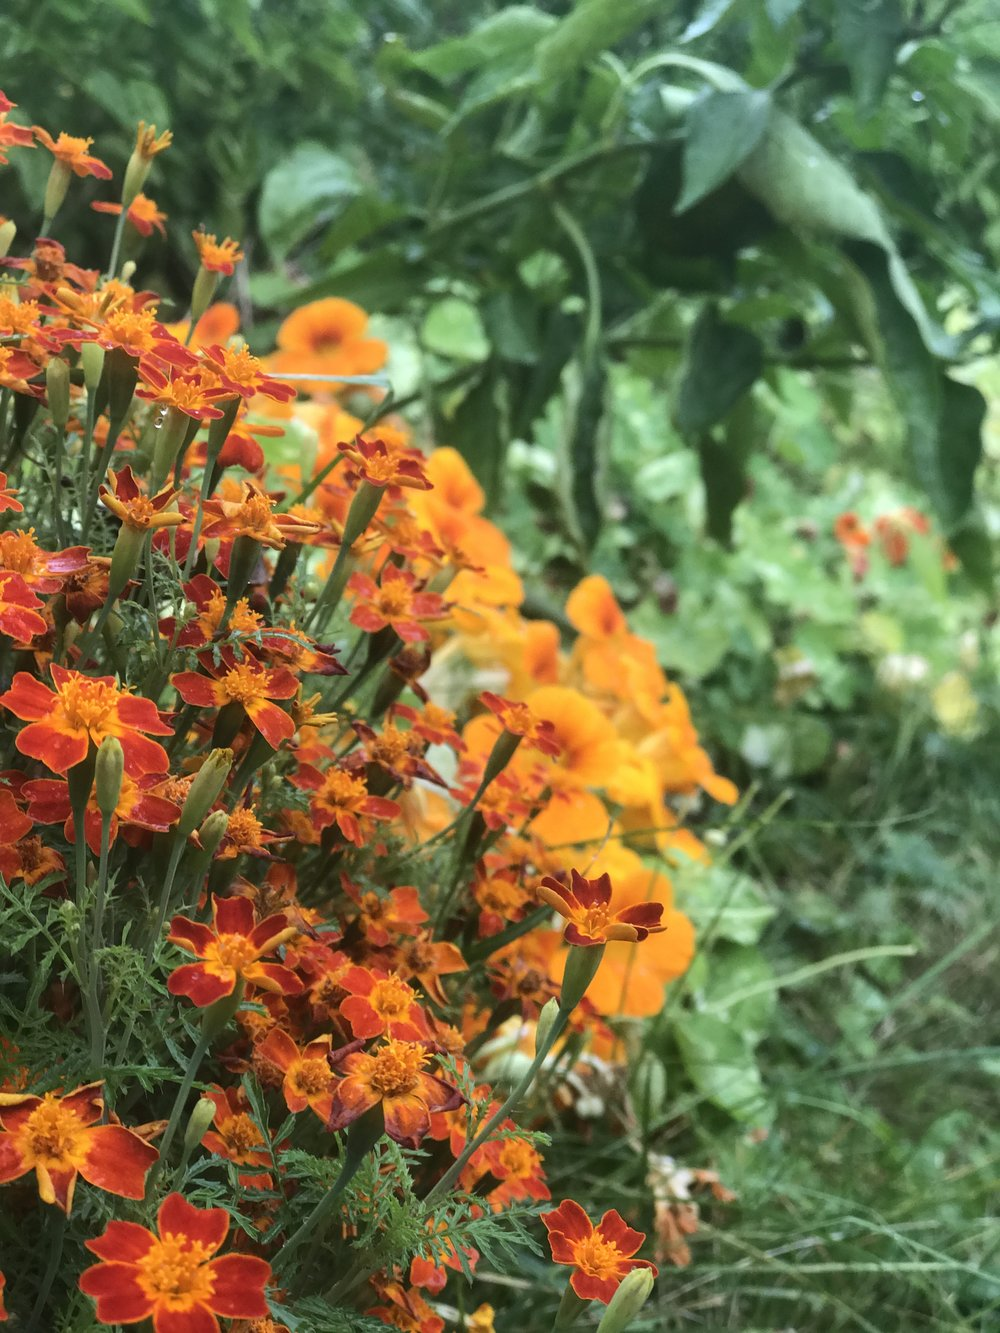 Mexican marigolds and Alaska nasturtiums in our pepper and tomato bed.